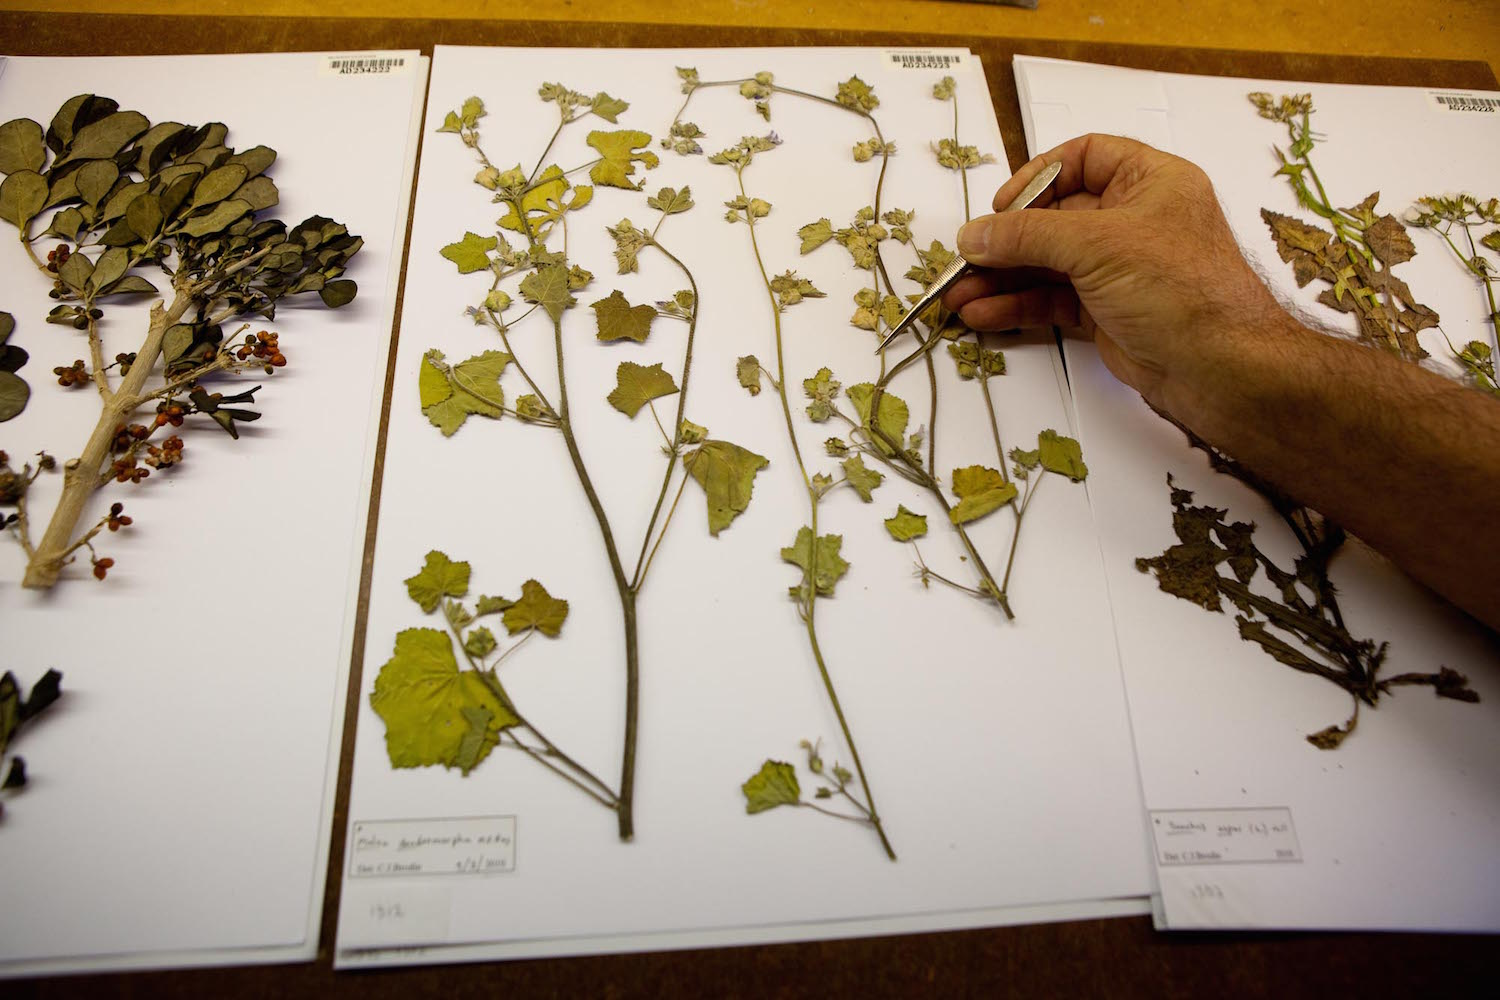 As well as making collections data available online, museum and herbarium collections are visited by researchers who need to inspect the specimens in person. Copyright: State Herbarium of South Australia.